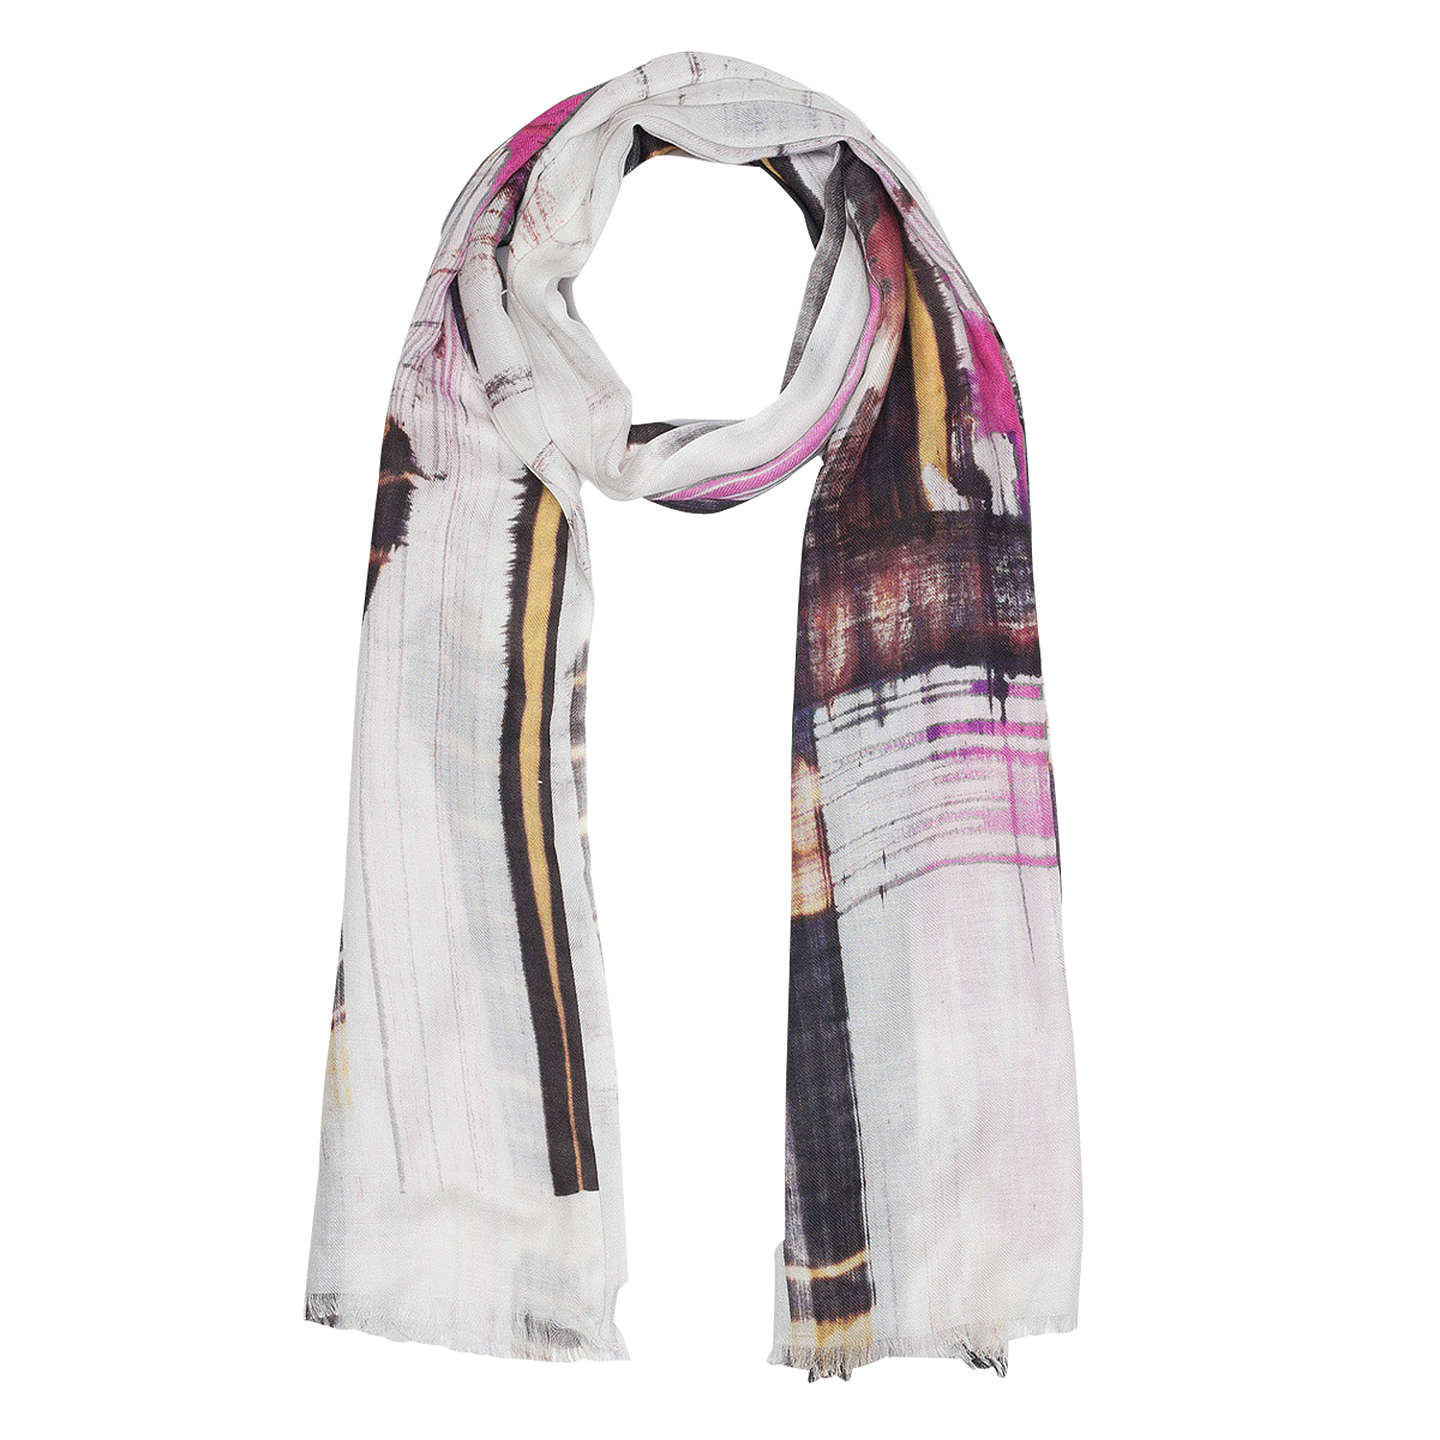 Buyfrench Connection Delphine Scarf, Neon Nectarmulti Online At Johnlewiscom